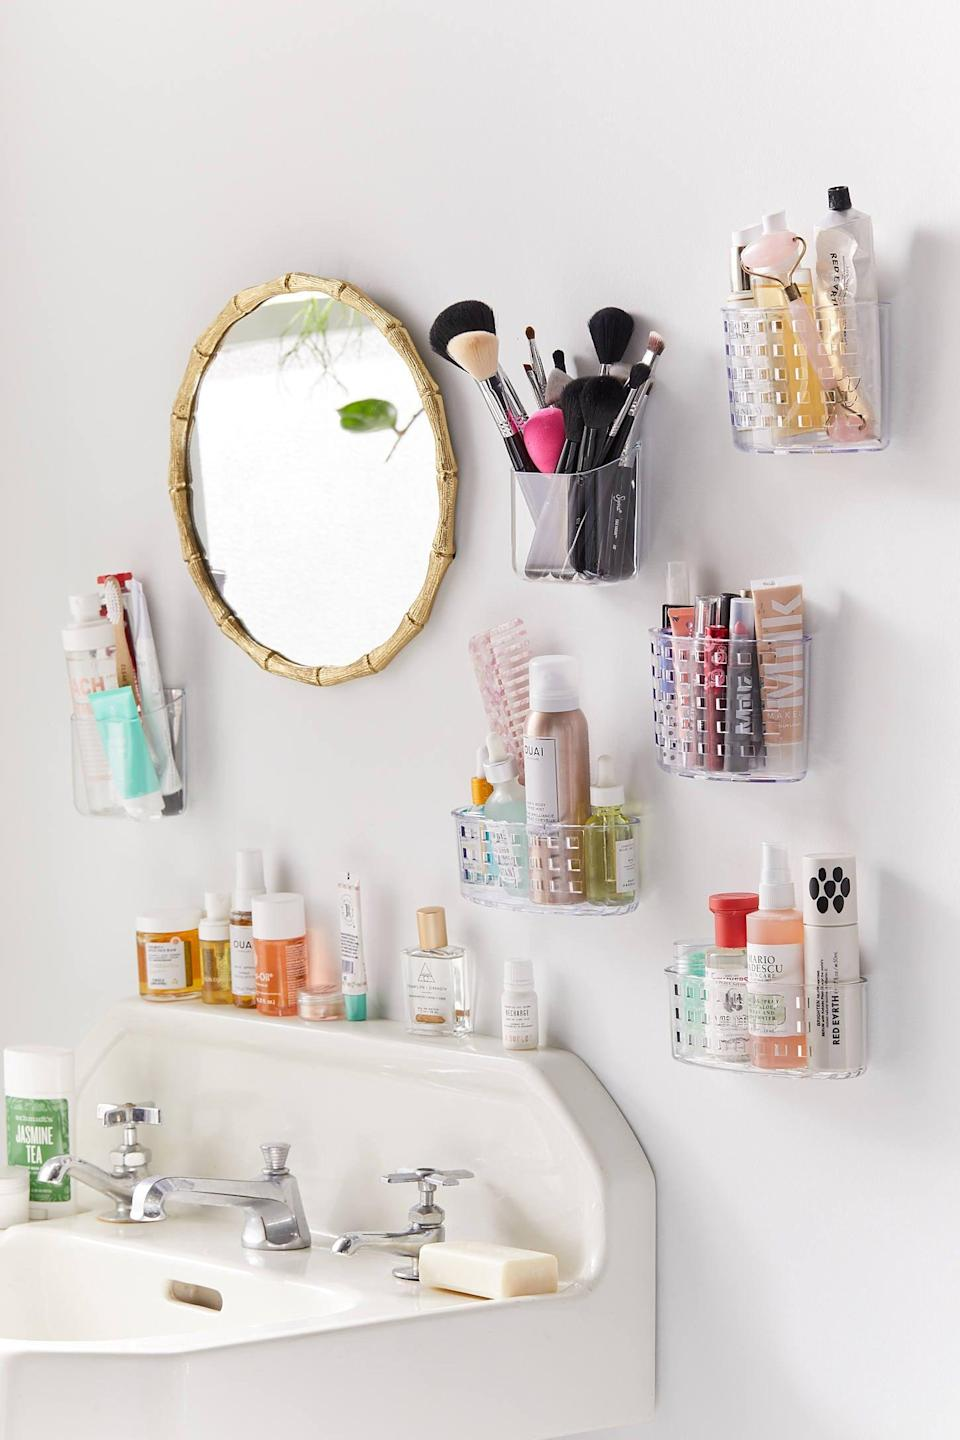 "<p>These <a href=""https://www.popsugar.com/buy/Acrylic-Toiletries-Wall-Pockets-551631?p_name=Acrylic%20Toiletries%20Wall%20Pockets&retailer=urbanoutfitters.com&pid=551631&price=8&evar1=casa%3Aus&evar9=47251564&evar98=https%3A%2F%2Fwww.popsugar.com%2Fhome%2Fphoto-gallery%2F47251564%2Fimage%2F47252509%2FAcrylic-Toiletries-Wall-Pocket&list1=cleaning%2Corganization%2Cspring%20cleaning%2Csmall%20space%20living%2Cbathrooms%2Chome%20organization&prop13=mobile&pdata=1"" class=""link rapid-noclick-resp"" rel=""nofollow noopener"" target=""_blank"" data-ylk=""slk:Acrylic Toiletries Wall Pockets"">Acrylic Toiletries Wall Pockets</a> ($8) are great for makeup brushes and products.</p>"